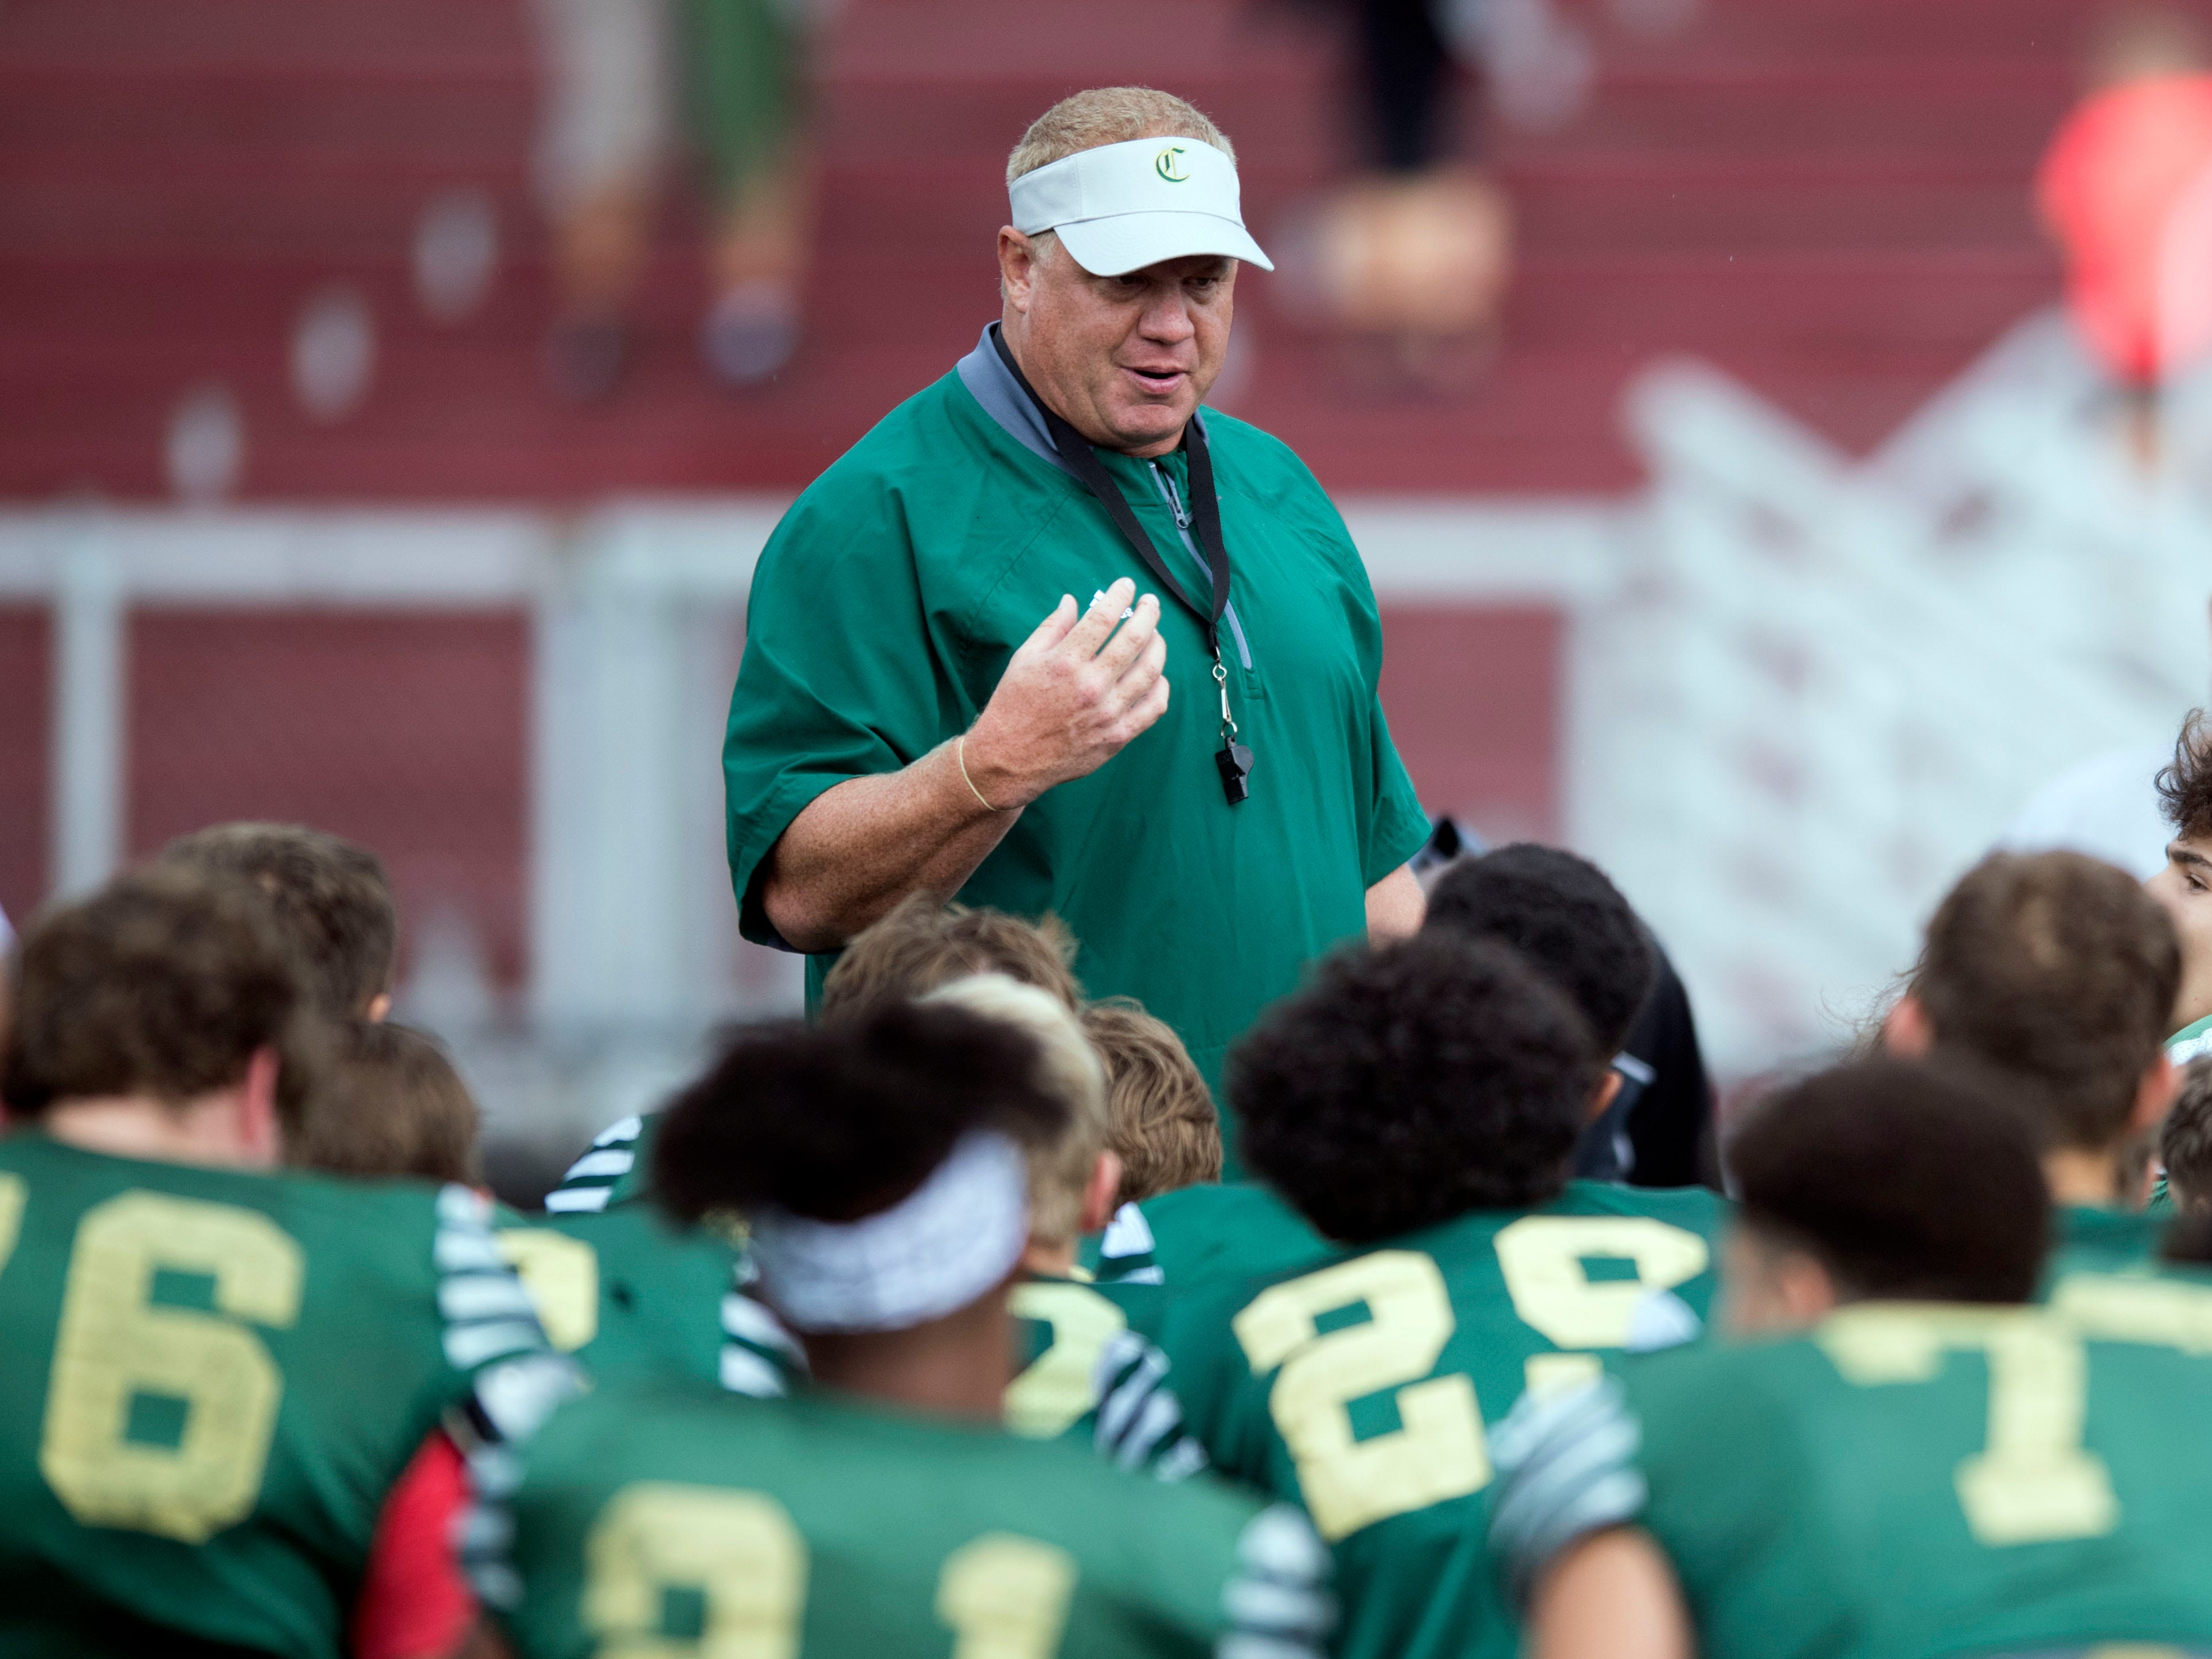 Knoxville Catholic coach Steve Matthews with the team before the start of their football scrimmage against Alcoa on Tuesday, July 31, 2018.